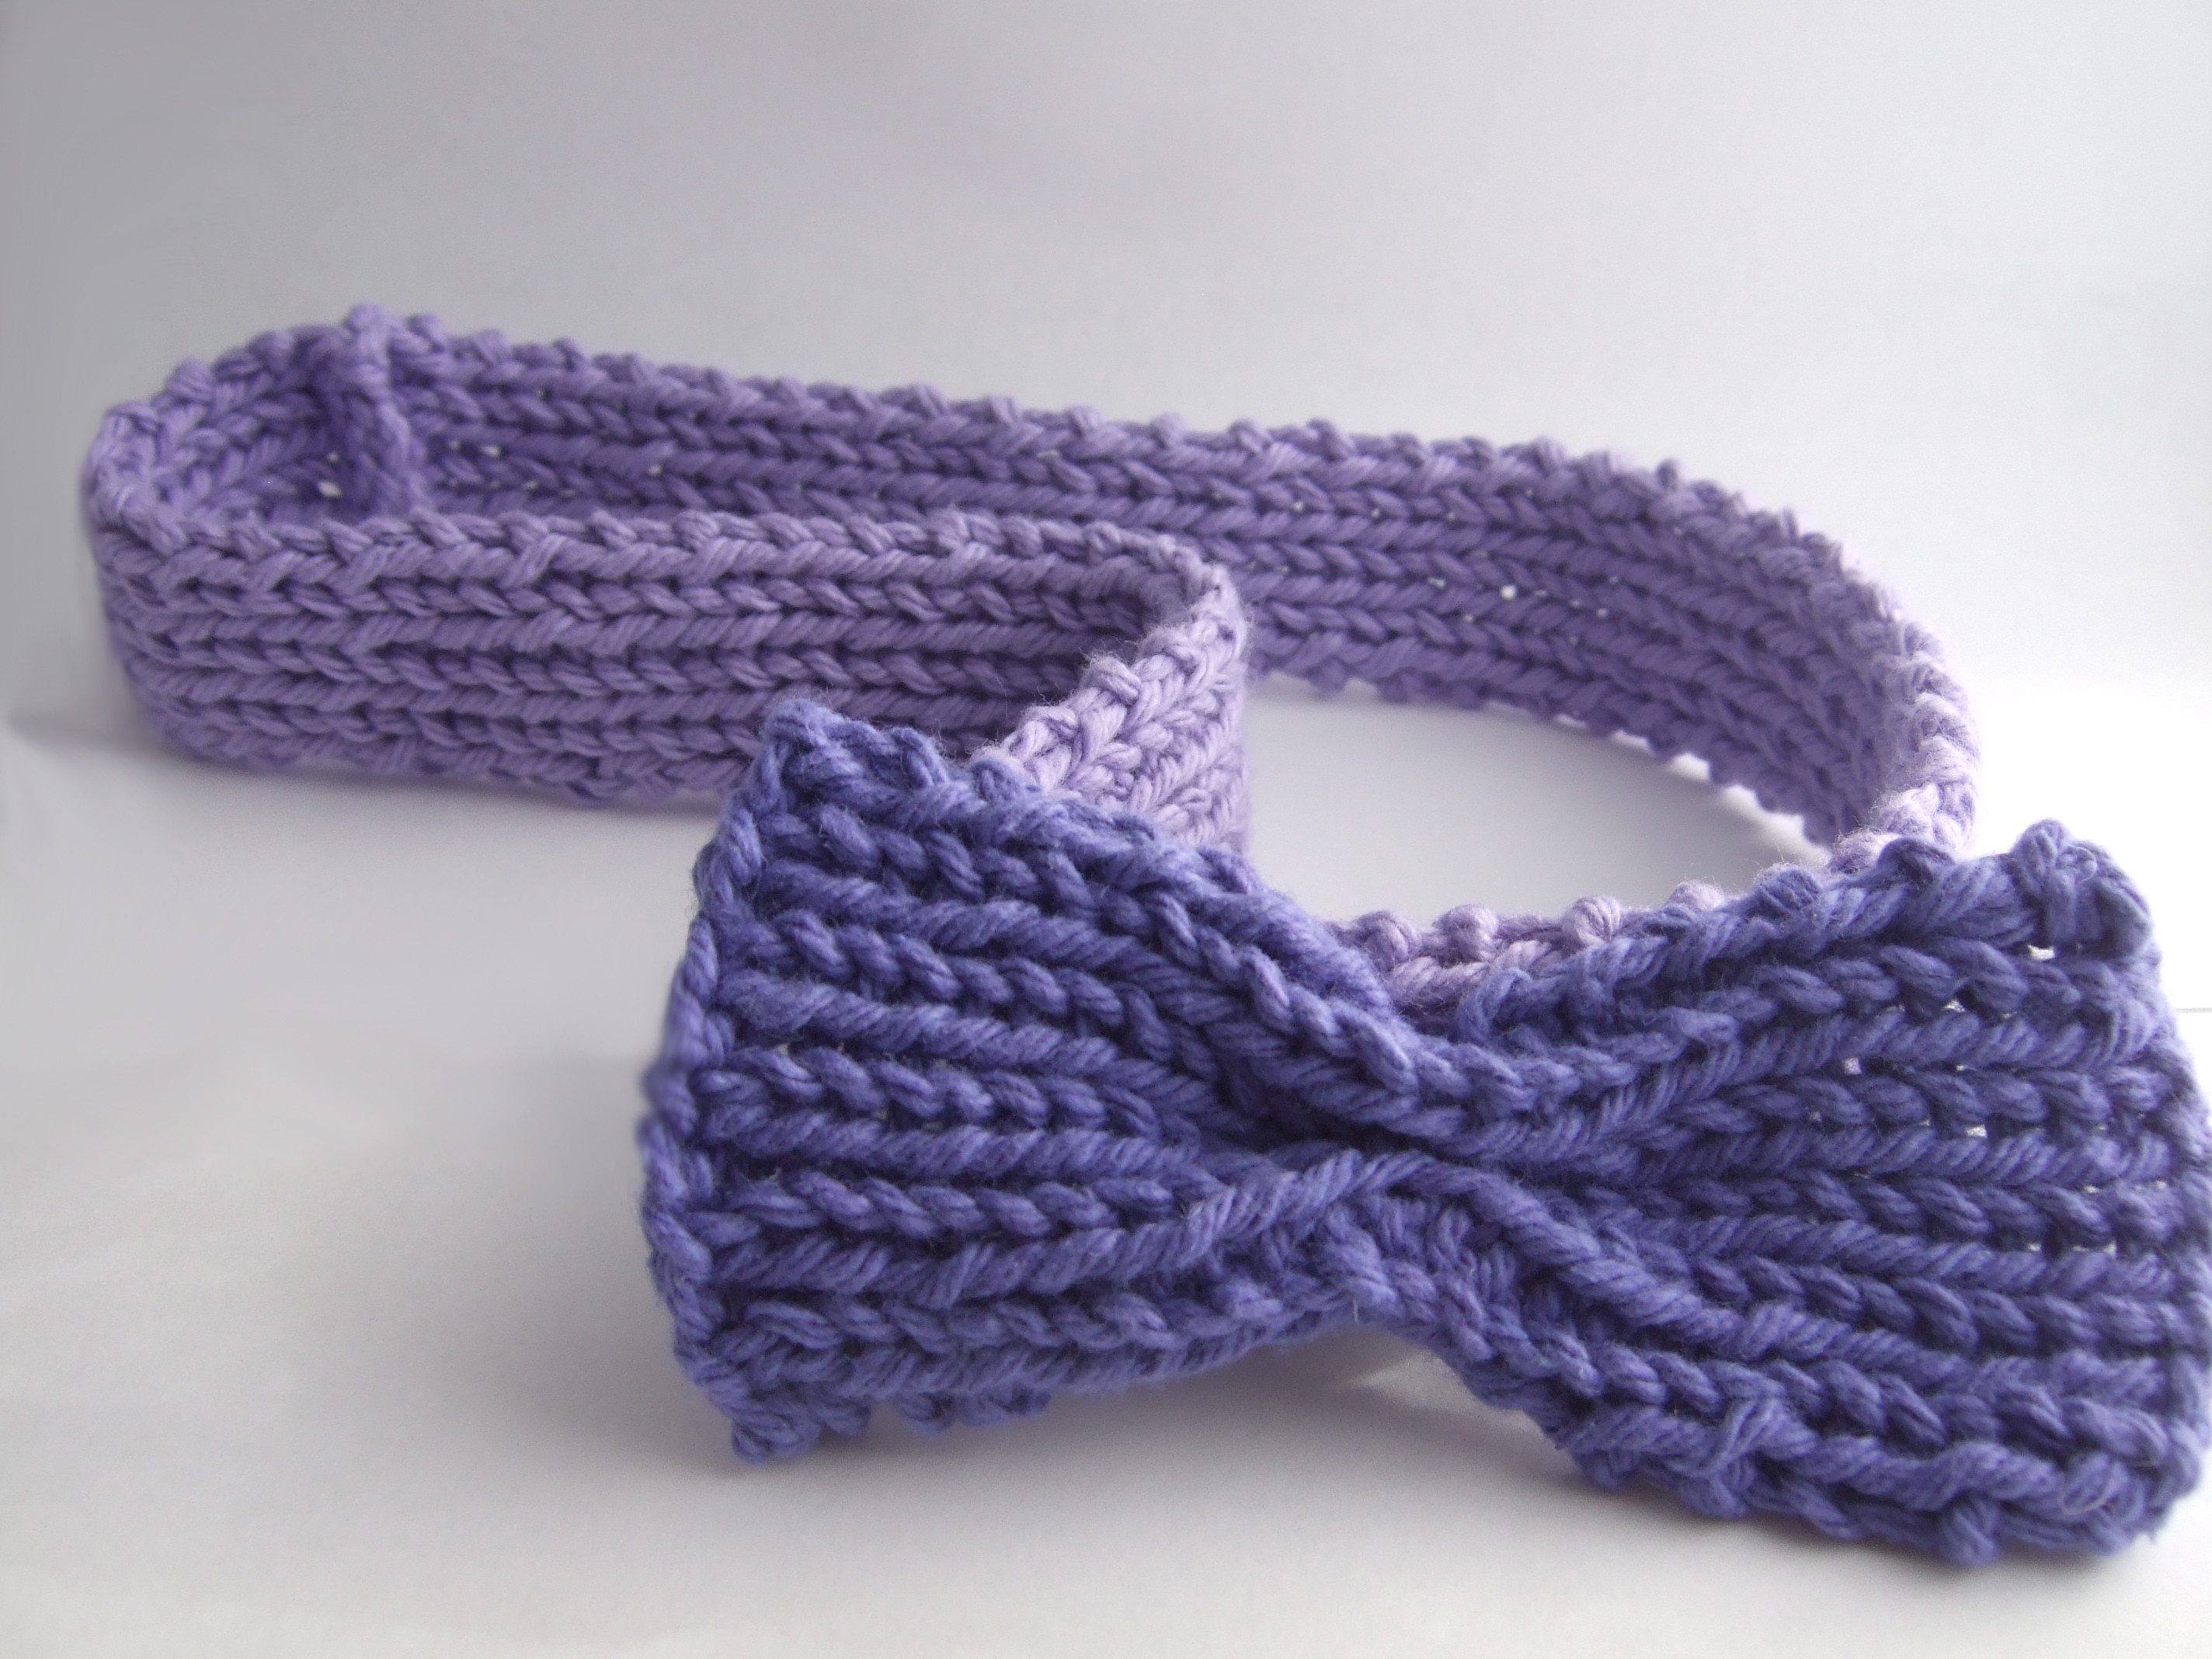 Knit Your Own Cute Headbands Tutorial by featured guest